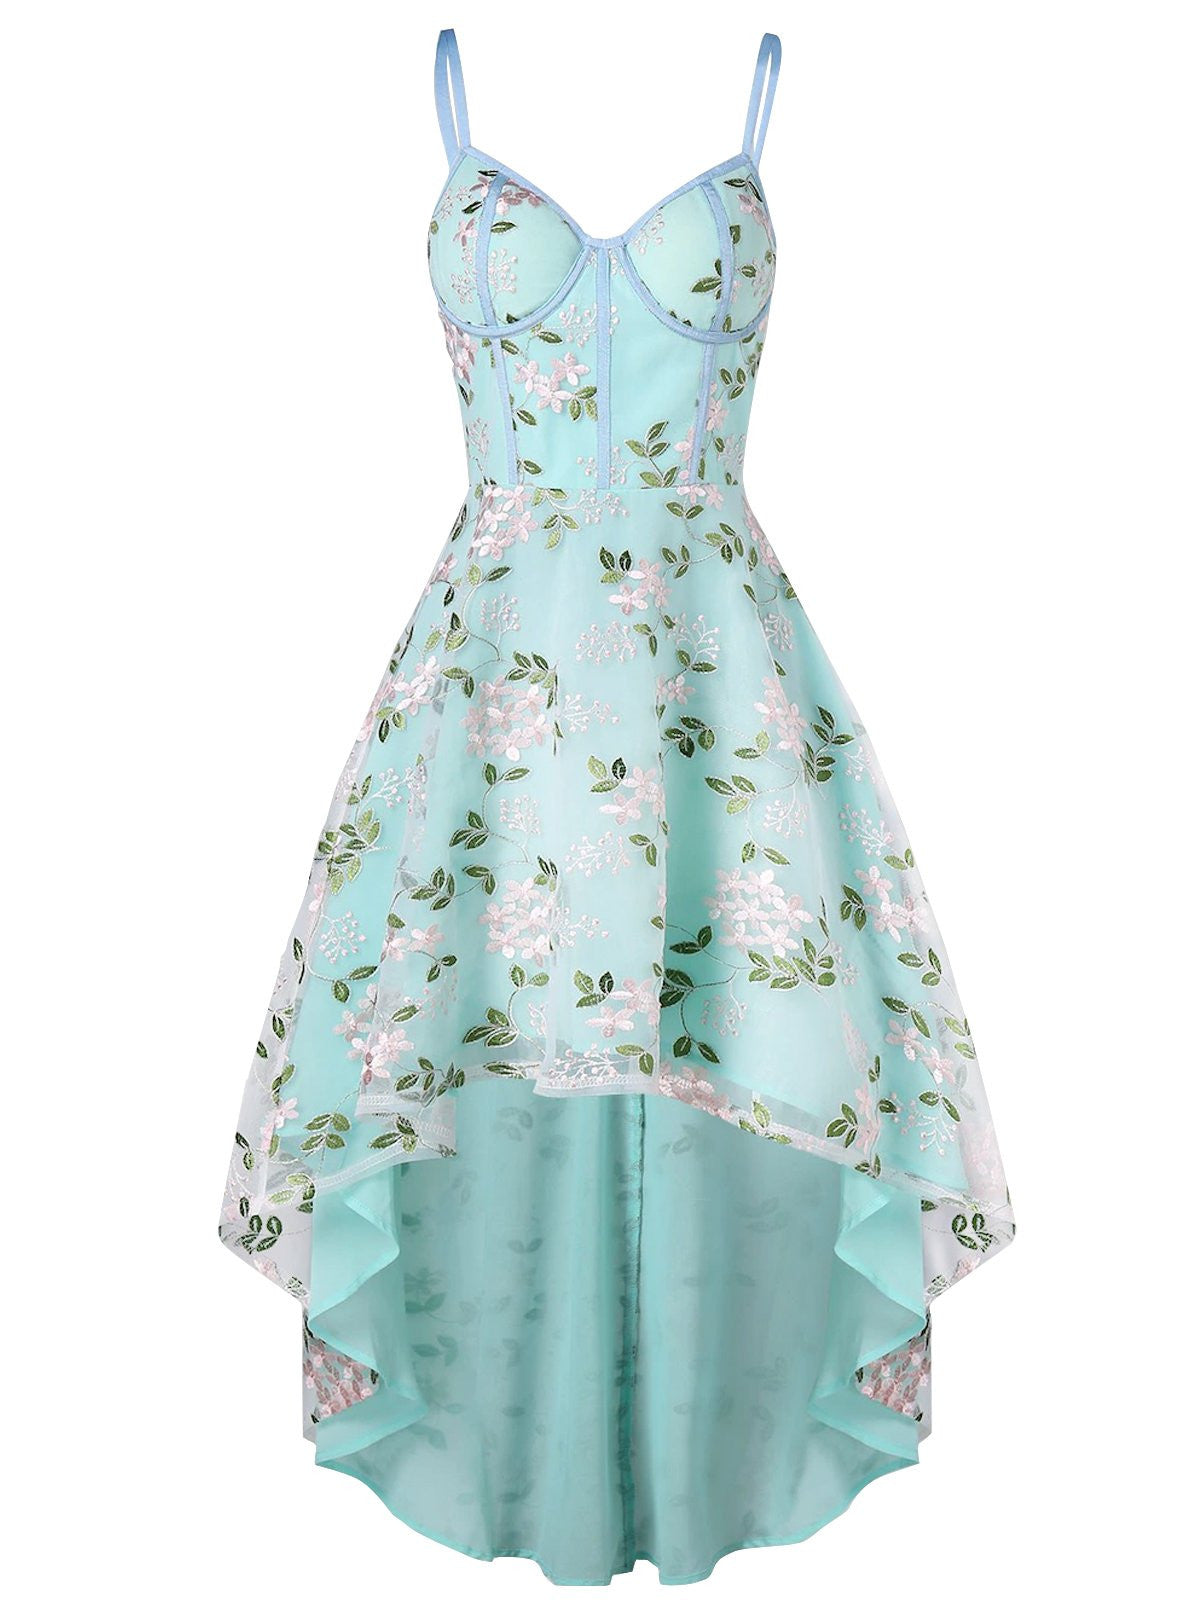 1950s Floral Embroidery Dress Retro Stage Chic Vintage